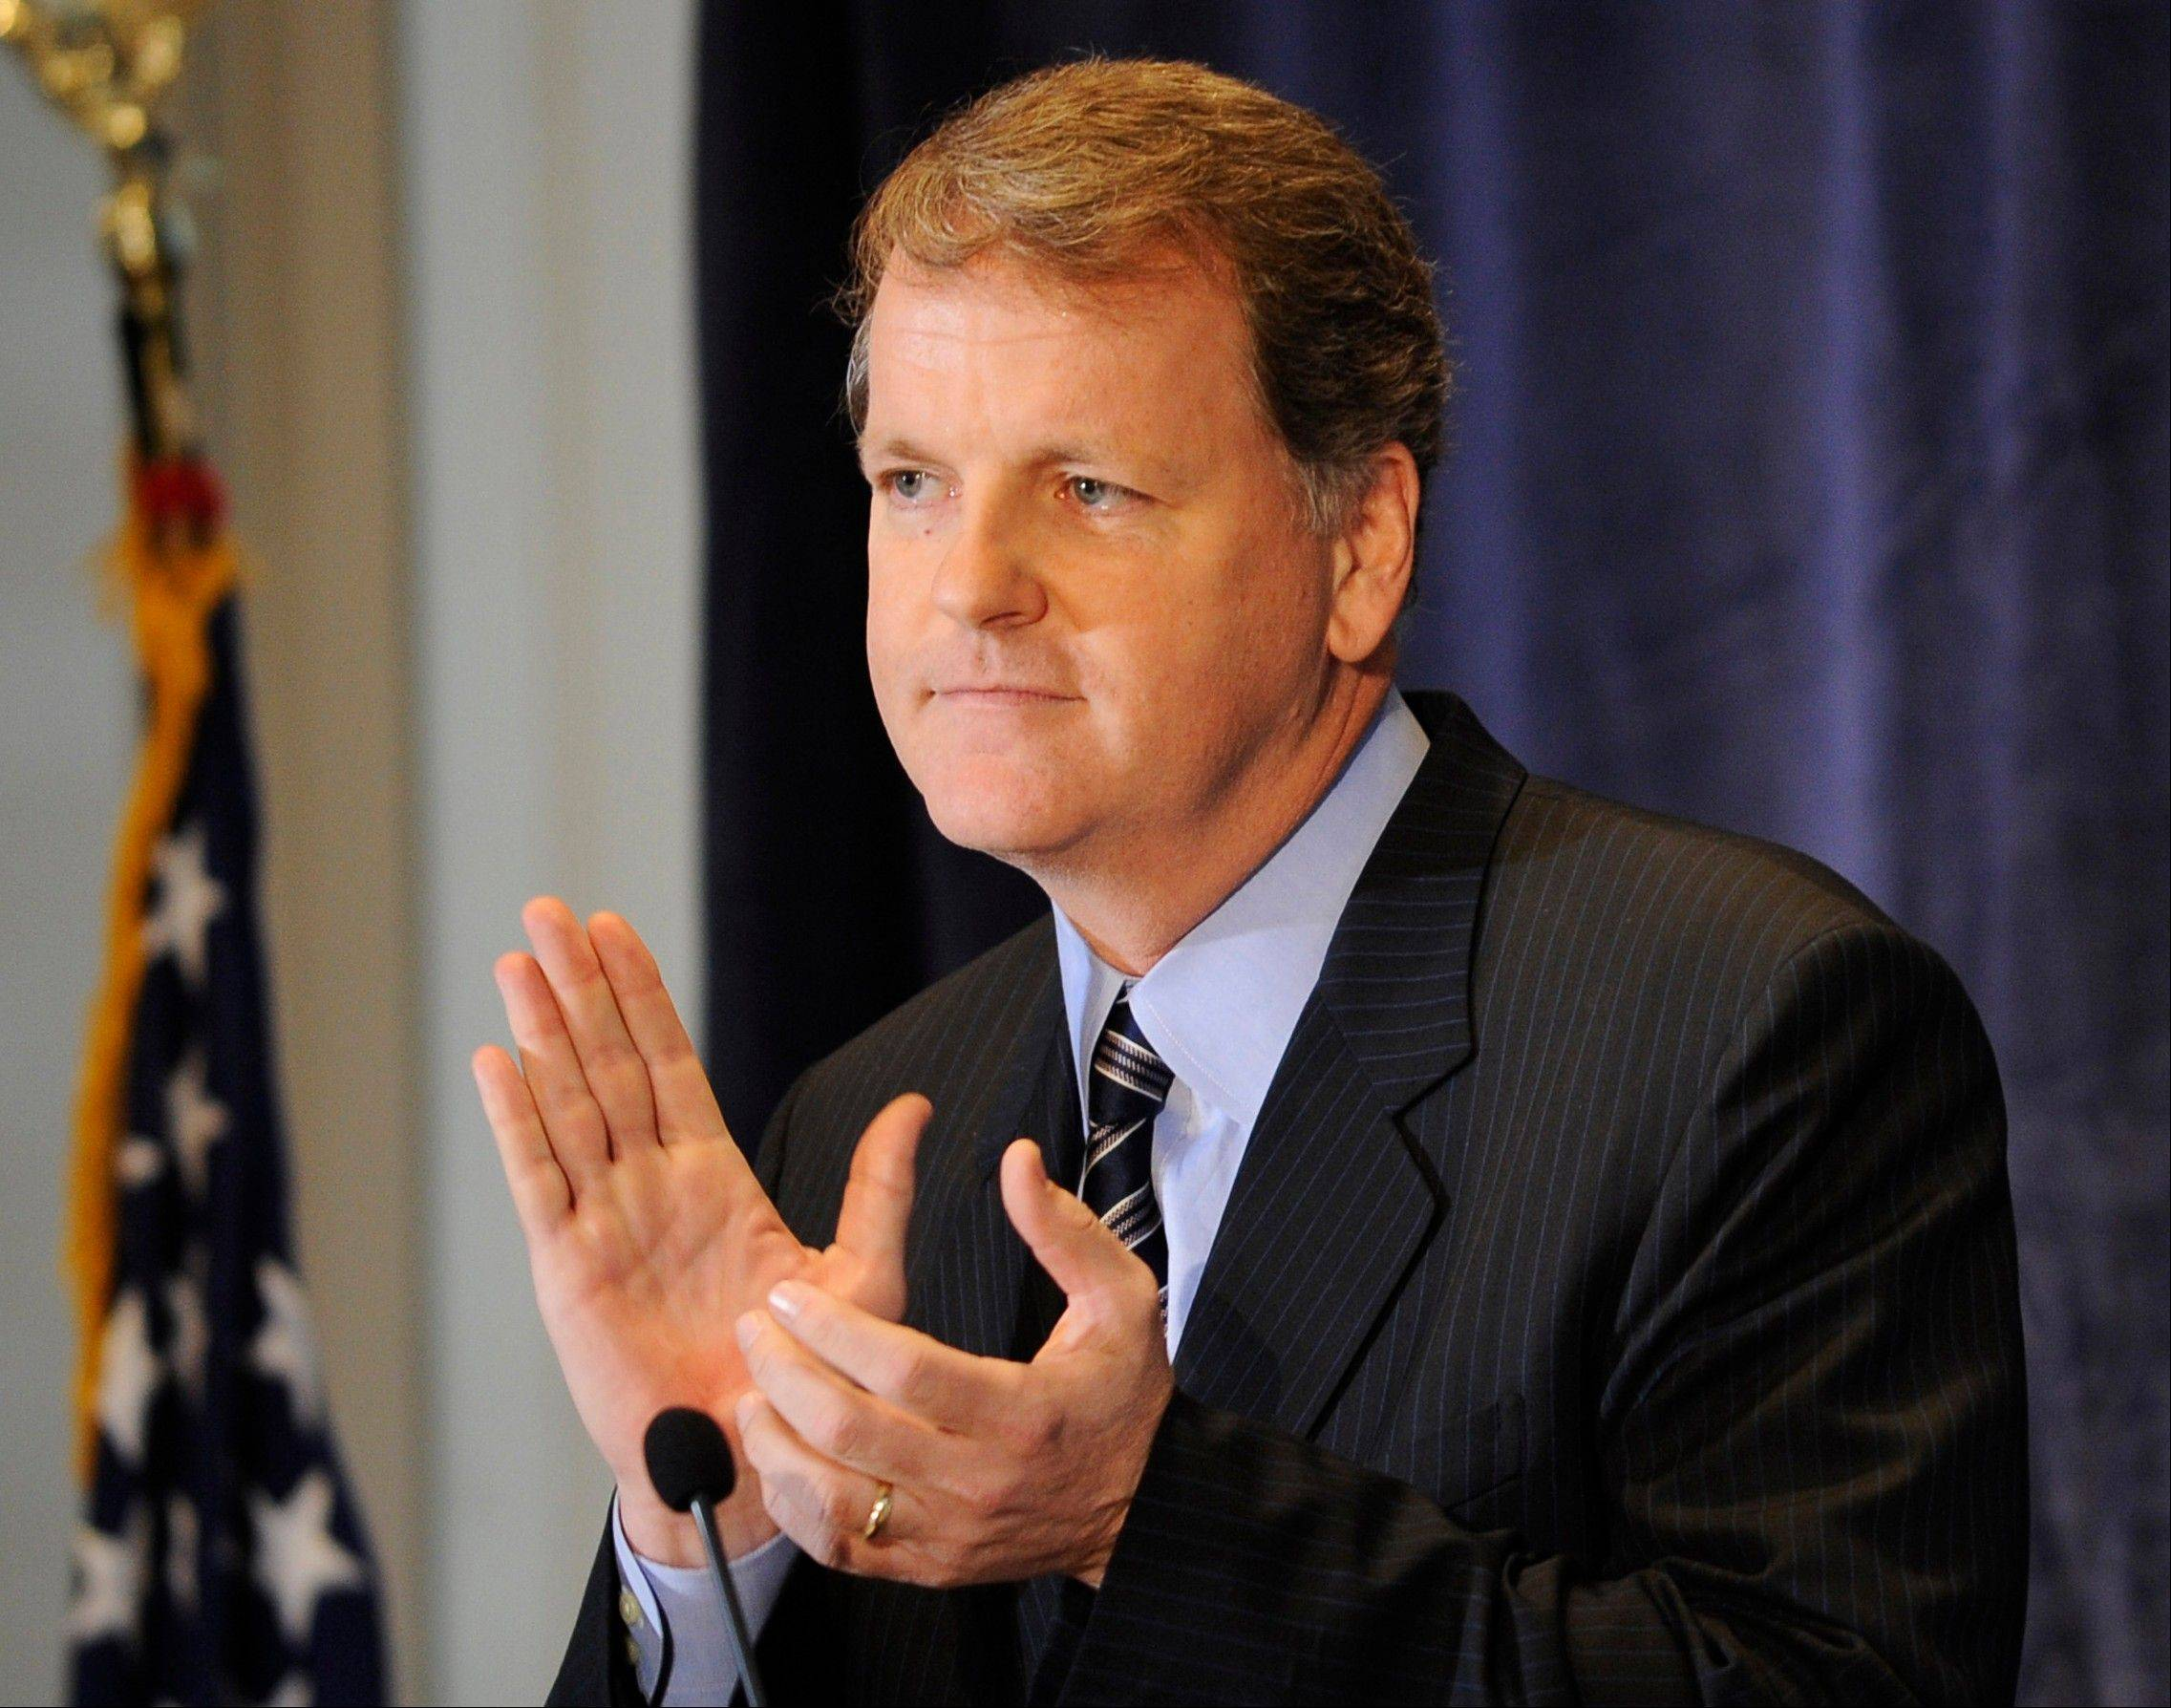 US Airways CEO and Chairman Doug Parker applauds the crew of flight 1549 in New York. Parker has no problem performing his own version of Gangnam Style before hundreds of employees. The CEO of US Airways even let a video of his dance get posted to YouTube. He�s tall, outspoken and a competitor. He�s also persistent. And that explains why he�s very close to being put in charge of the world�s largest airline, a product of the merger between American Airlines and US Airways.